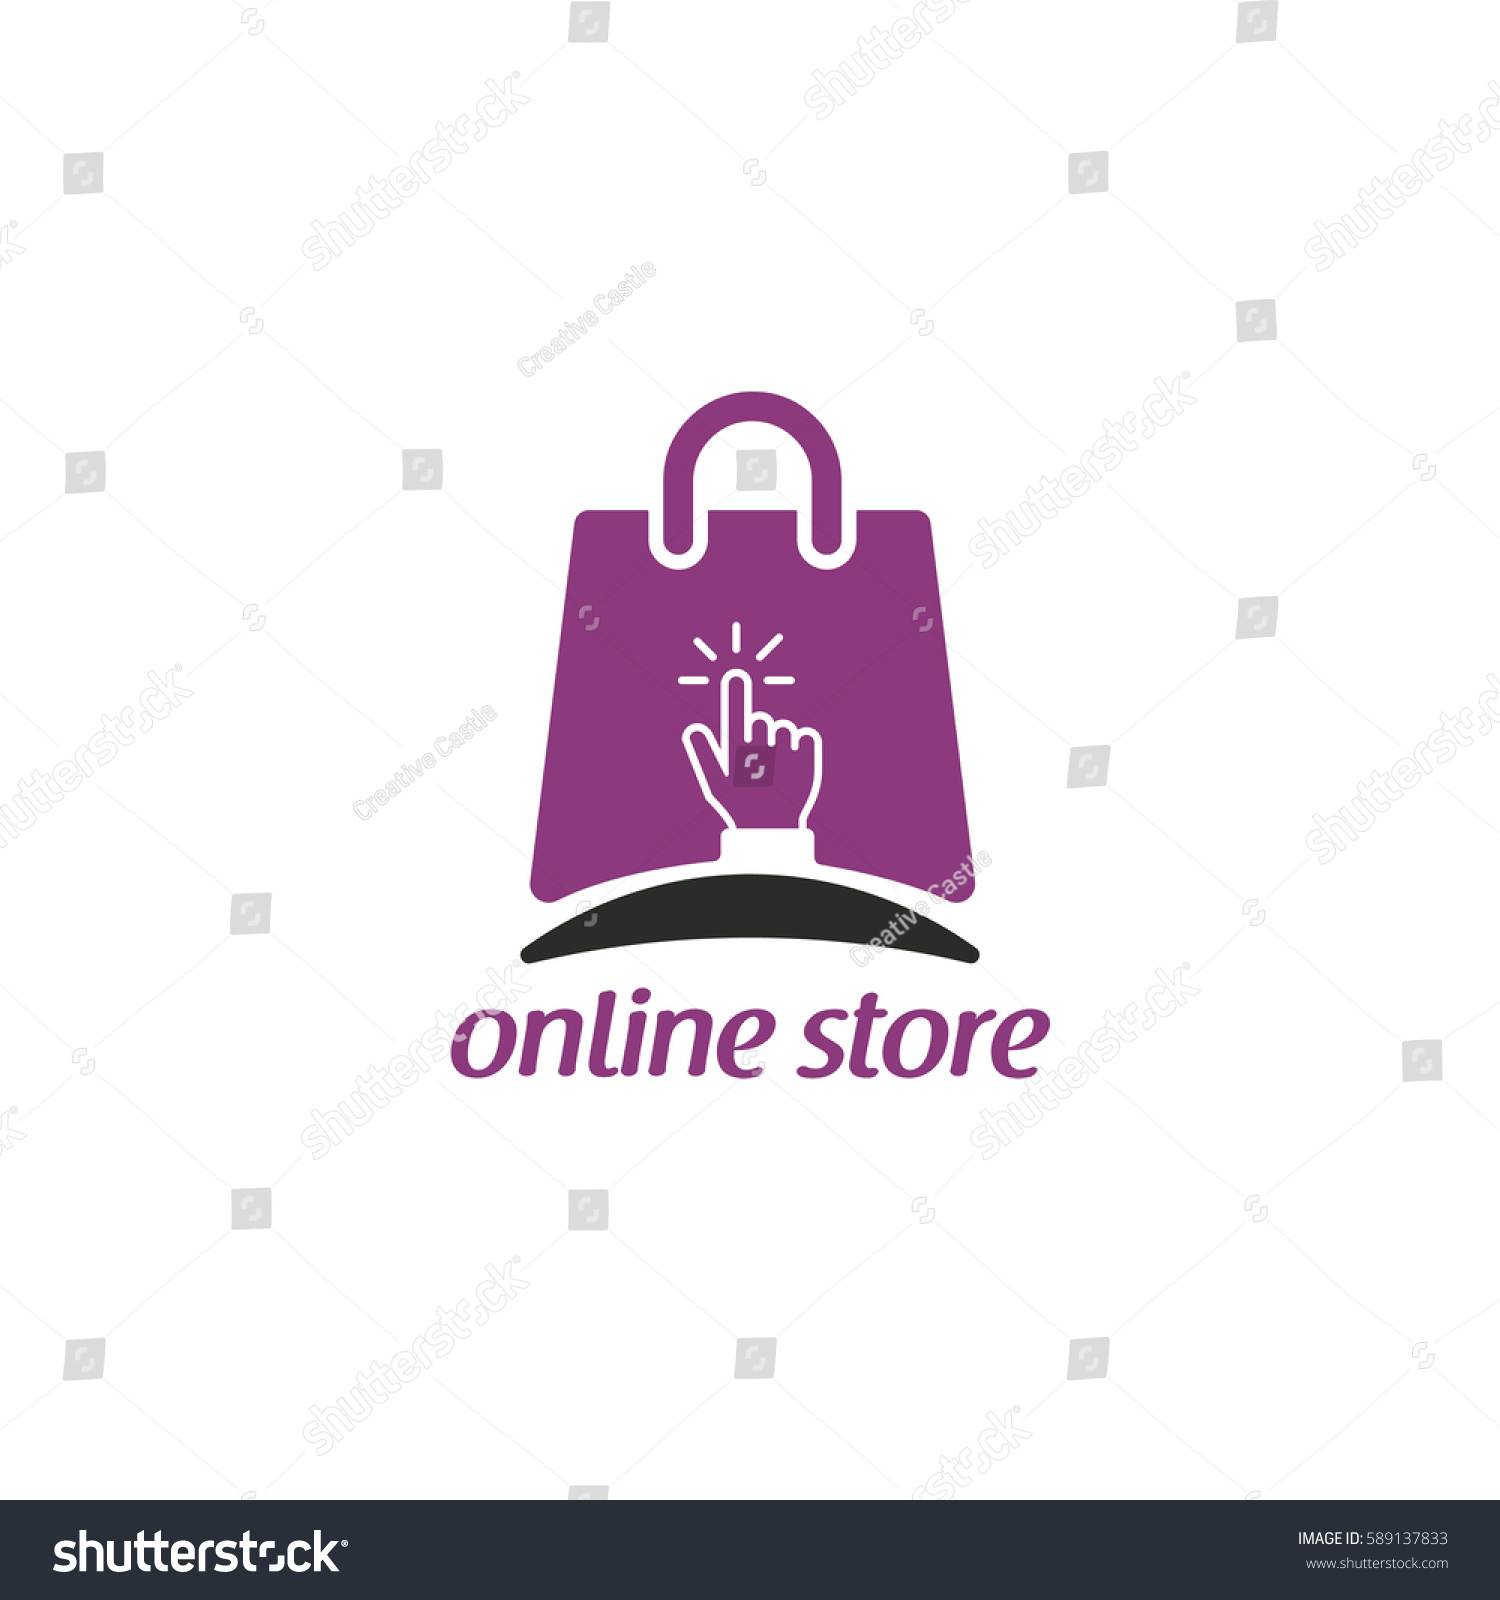 Online Shop Logo Vector Click Store Stock Vector 589137833